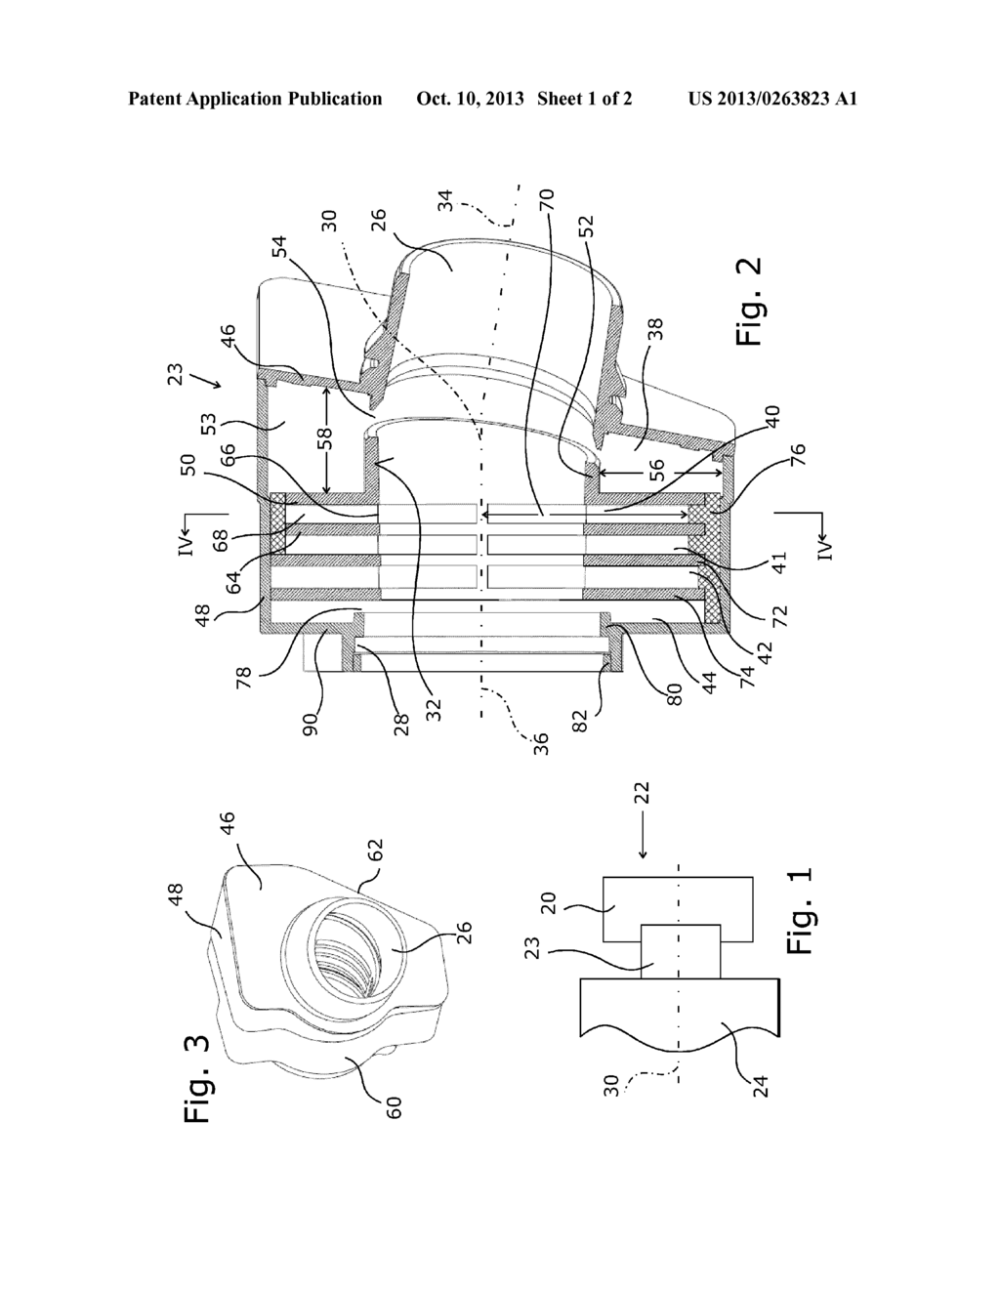 medium resolution of disc damper for charge air lines of an internal combustion engine having a turbocharger diagram schematic and image 02